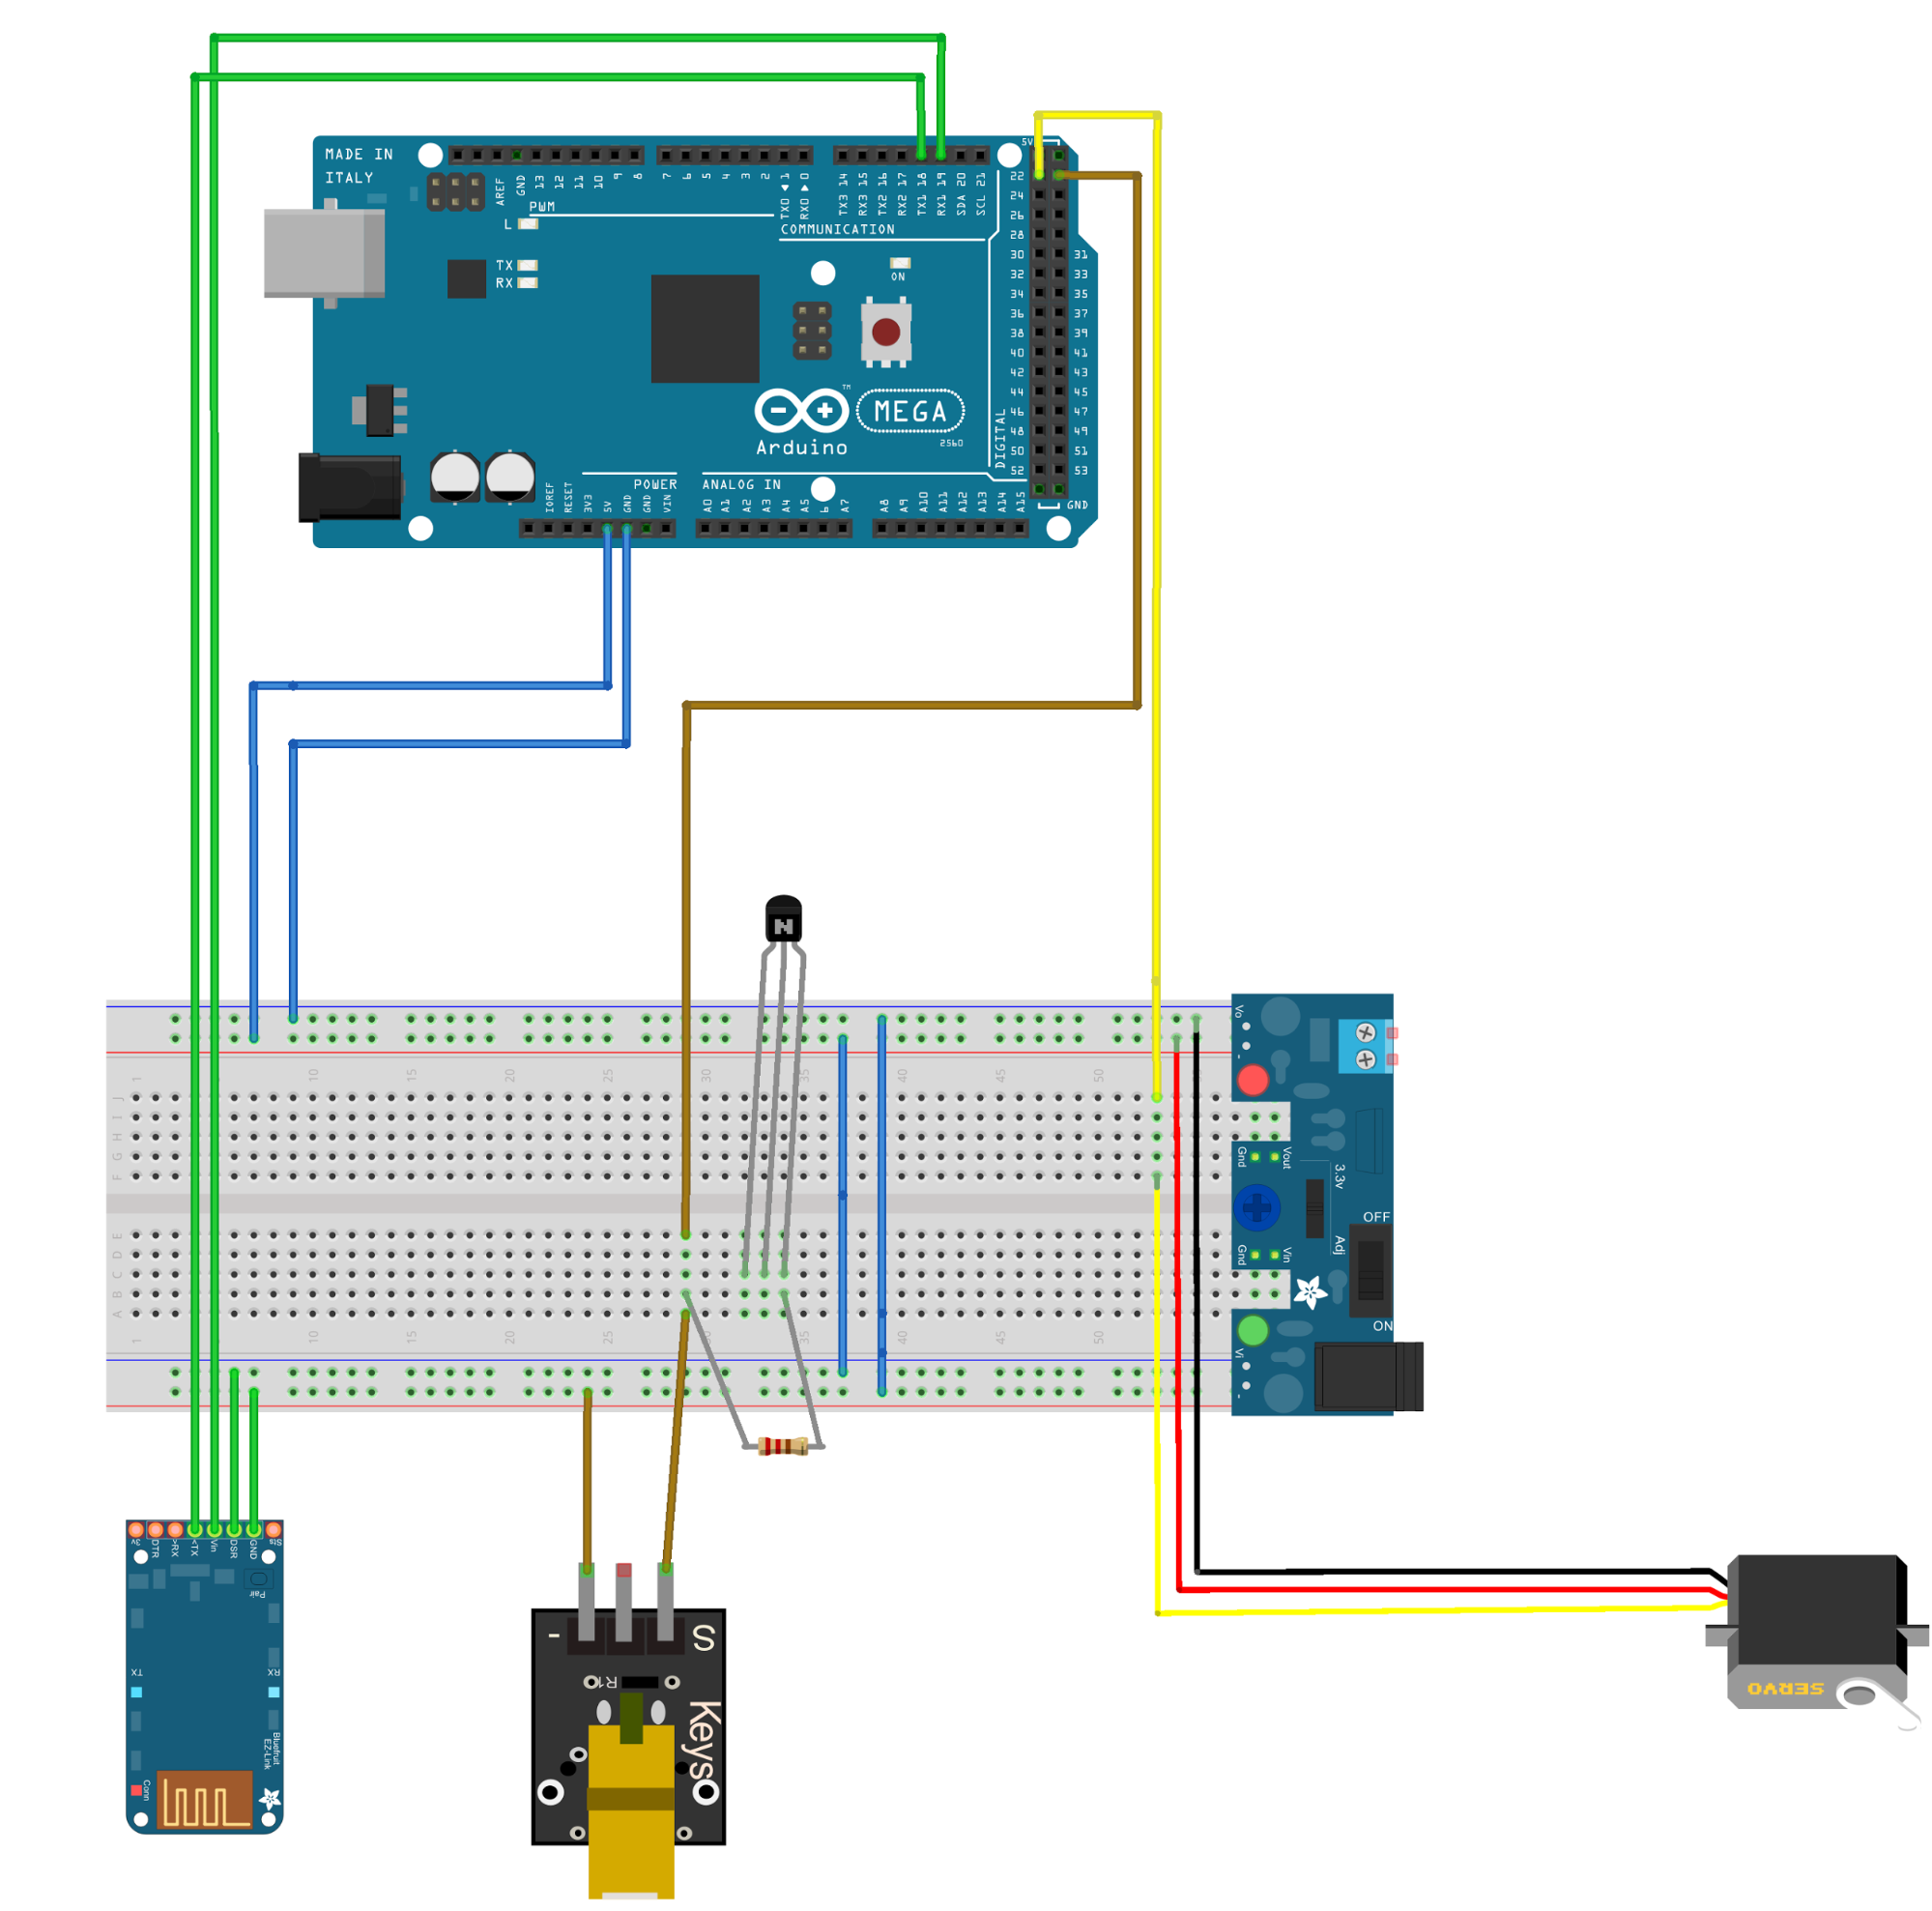 Results From Logic Analyzer 2 Axis Joystick Wiring Diagrams The Bluetooth Module Receives Commands Based Station Which Turn Laser On Off And Control Position Of Servo Motor Diagram